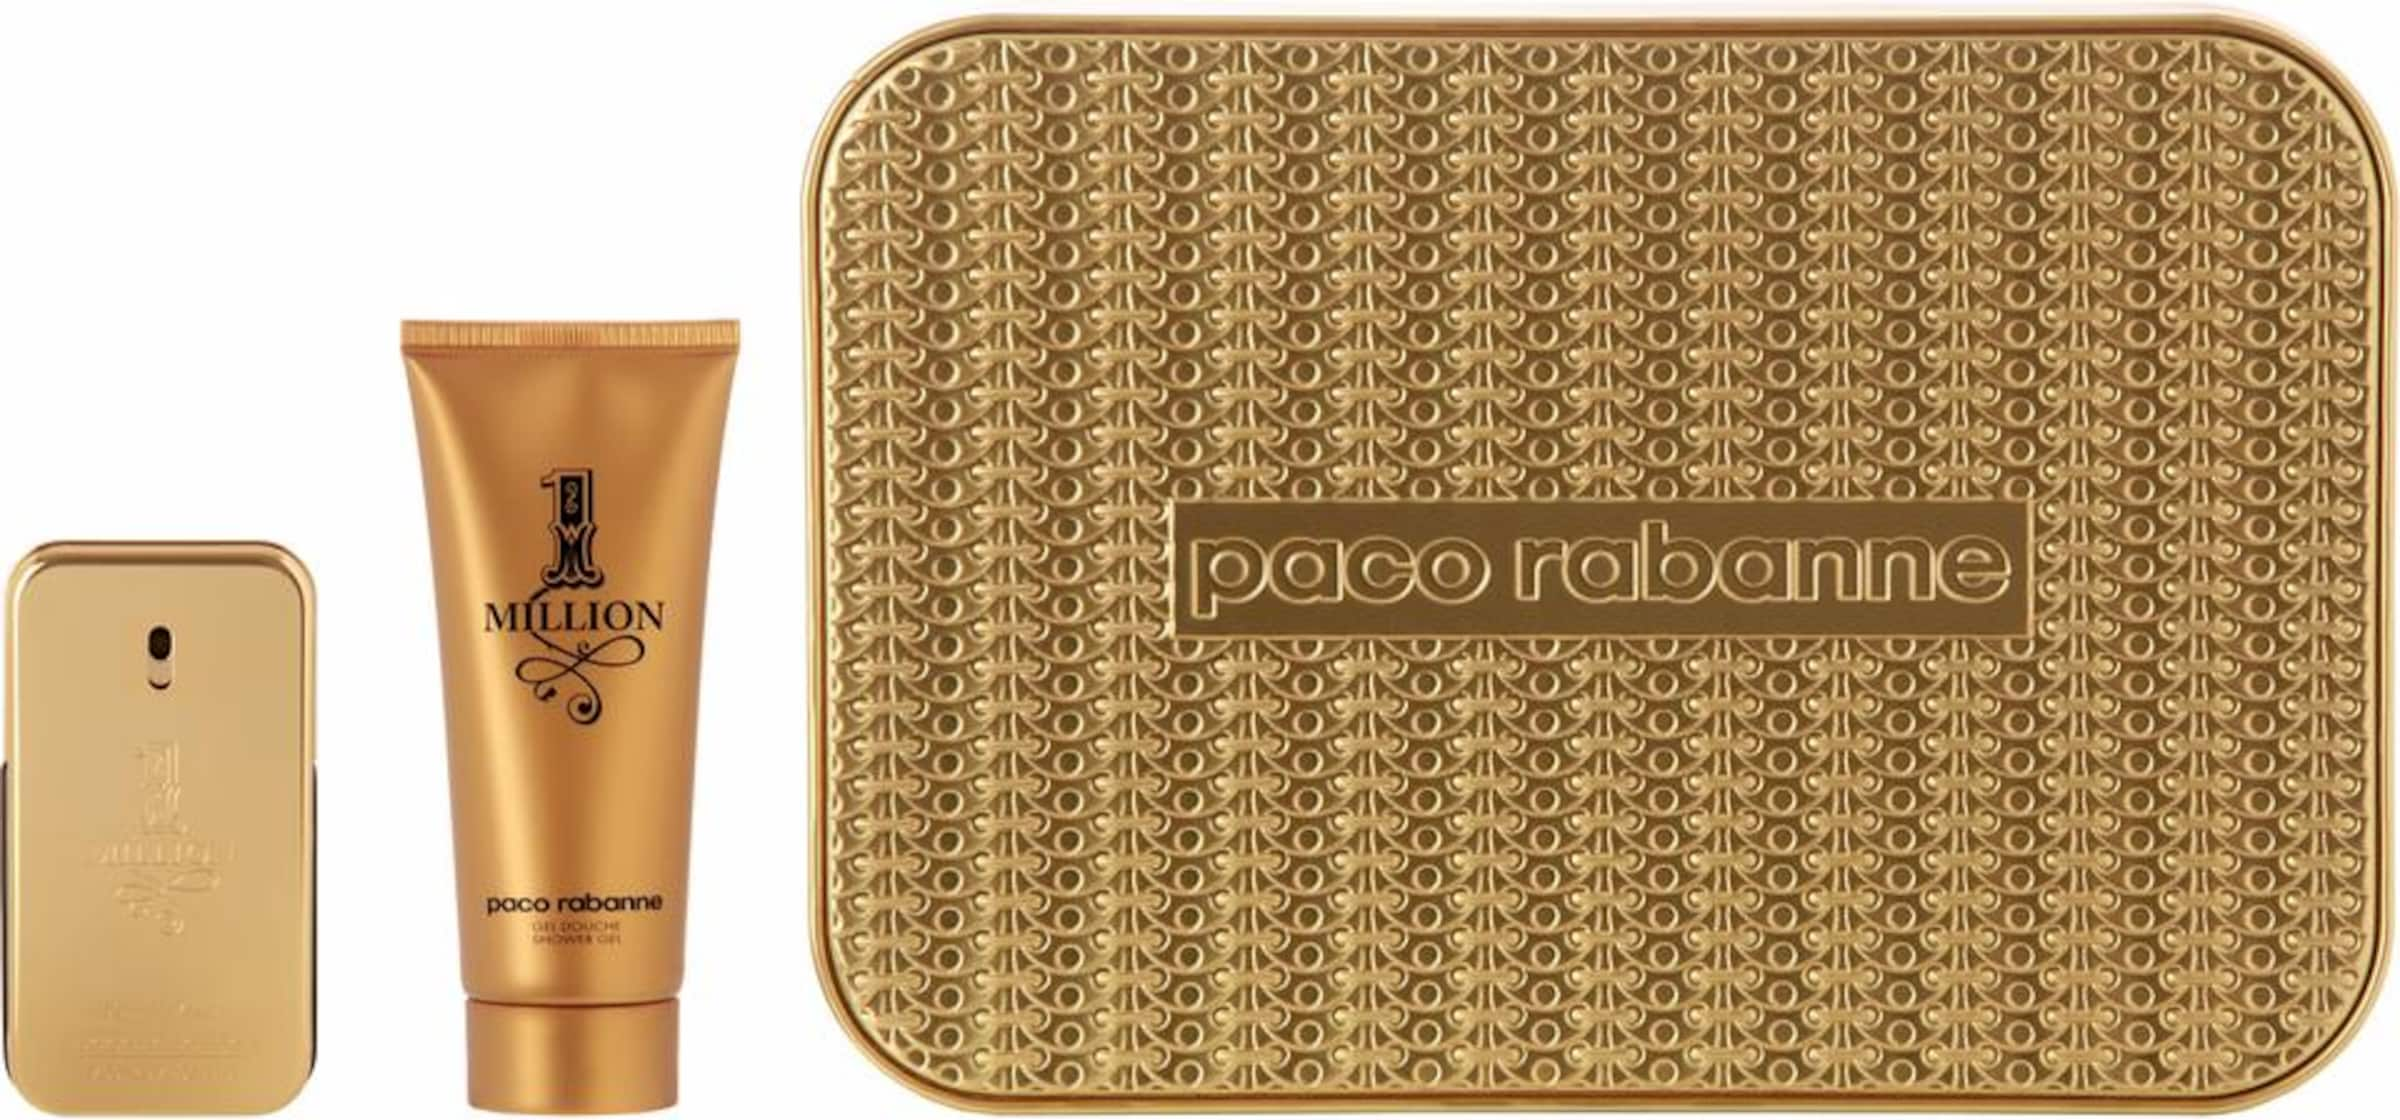 Rabanne Gold Paco 'one tlgIn Million'Duftset2 3j5ARq4L